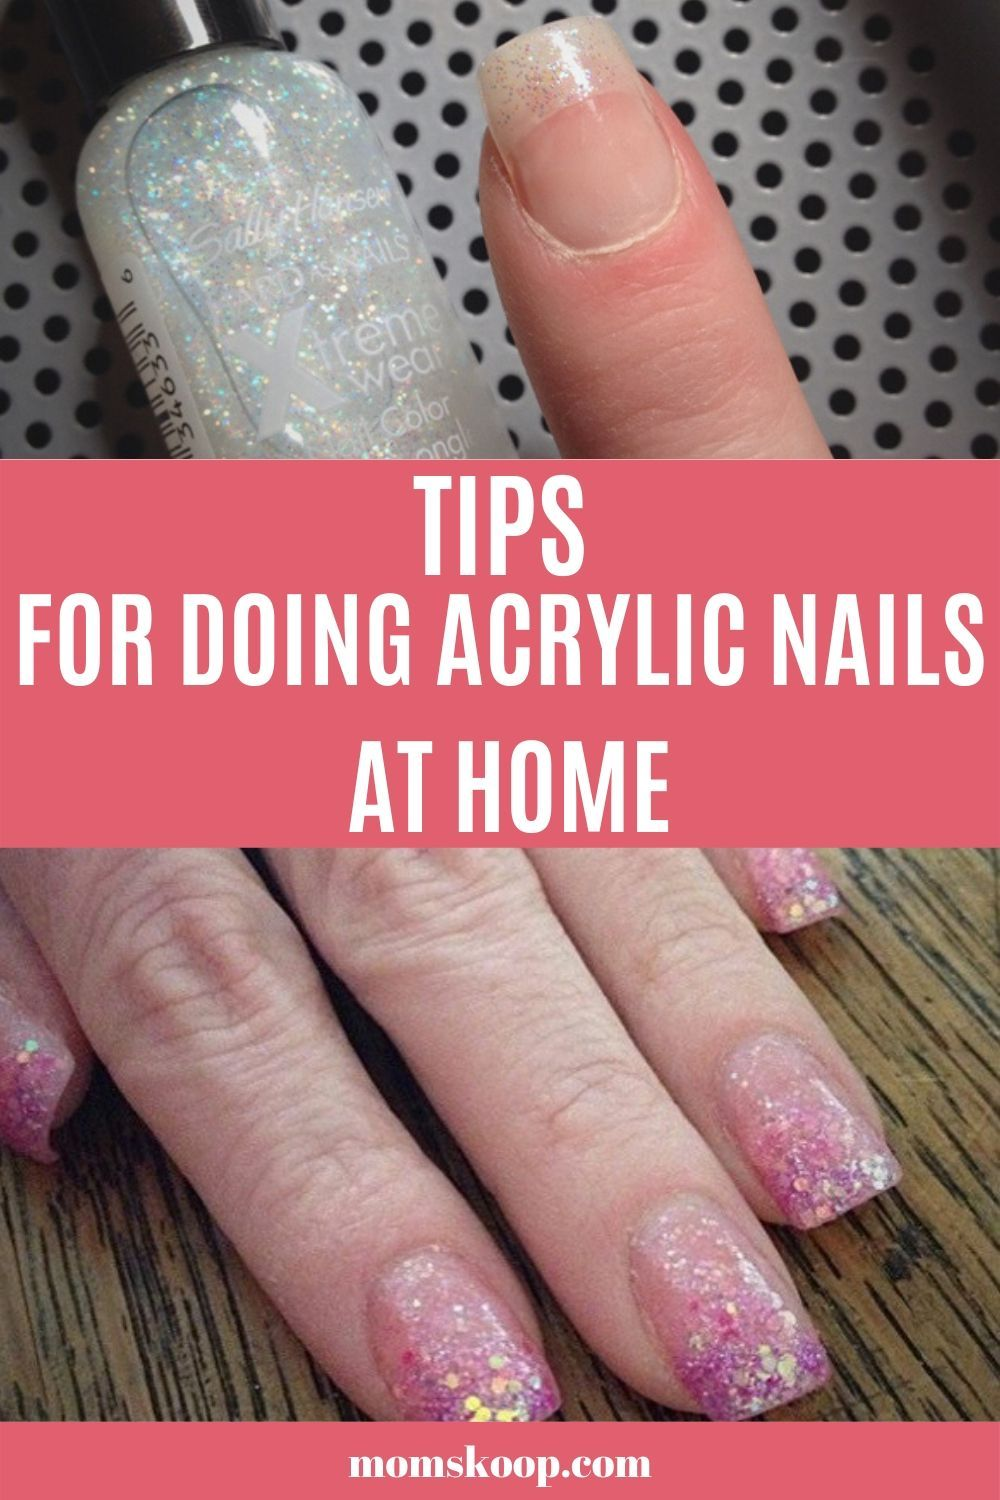 Tips For Doing Acrylic Nails At Home Diy Acrylic Nails Acrylic Nails At Home Nails